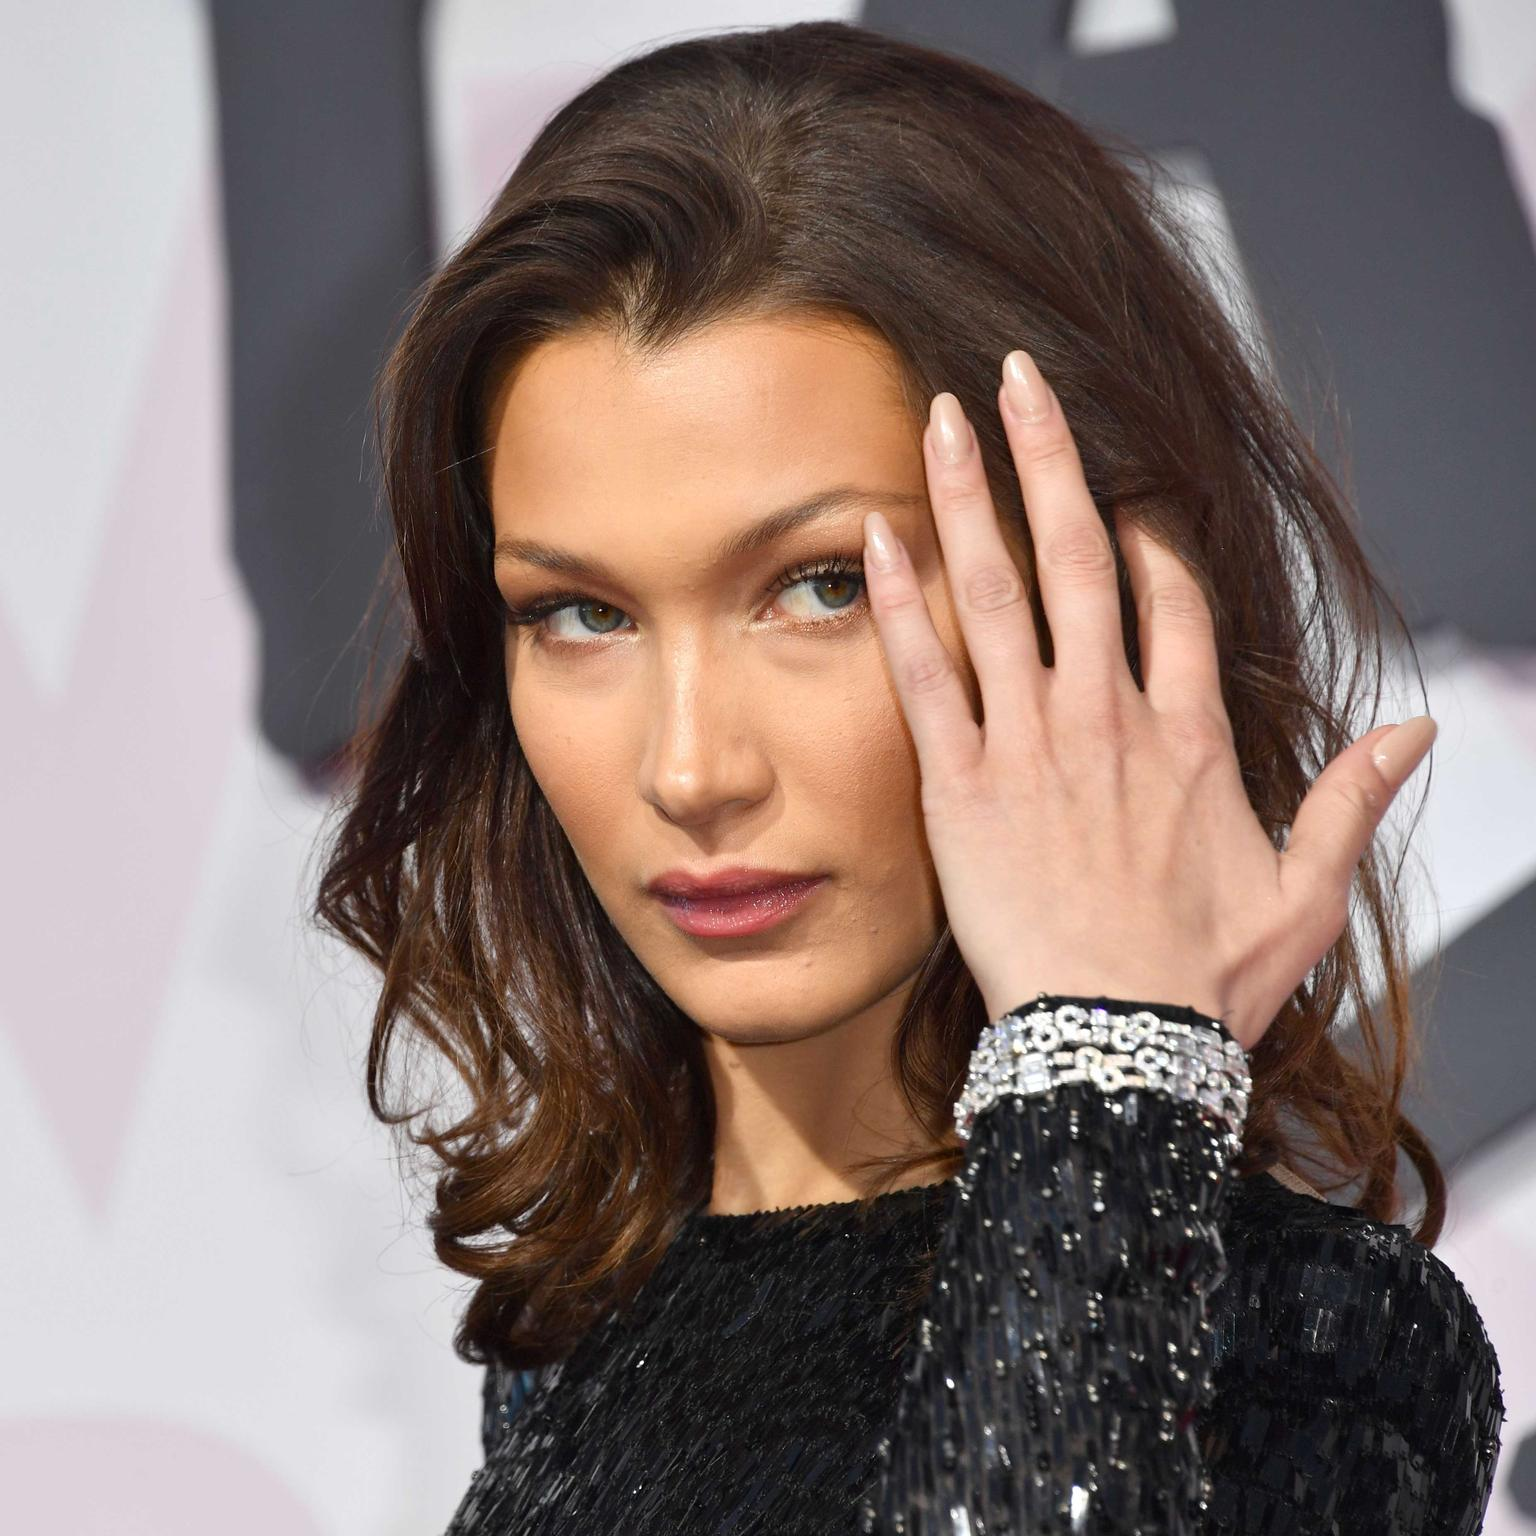 Bella Hadid at Fashion for Relief in Bulgari jewels at Cannes Film Festival